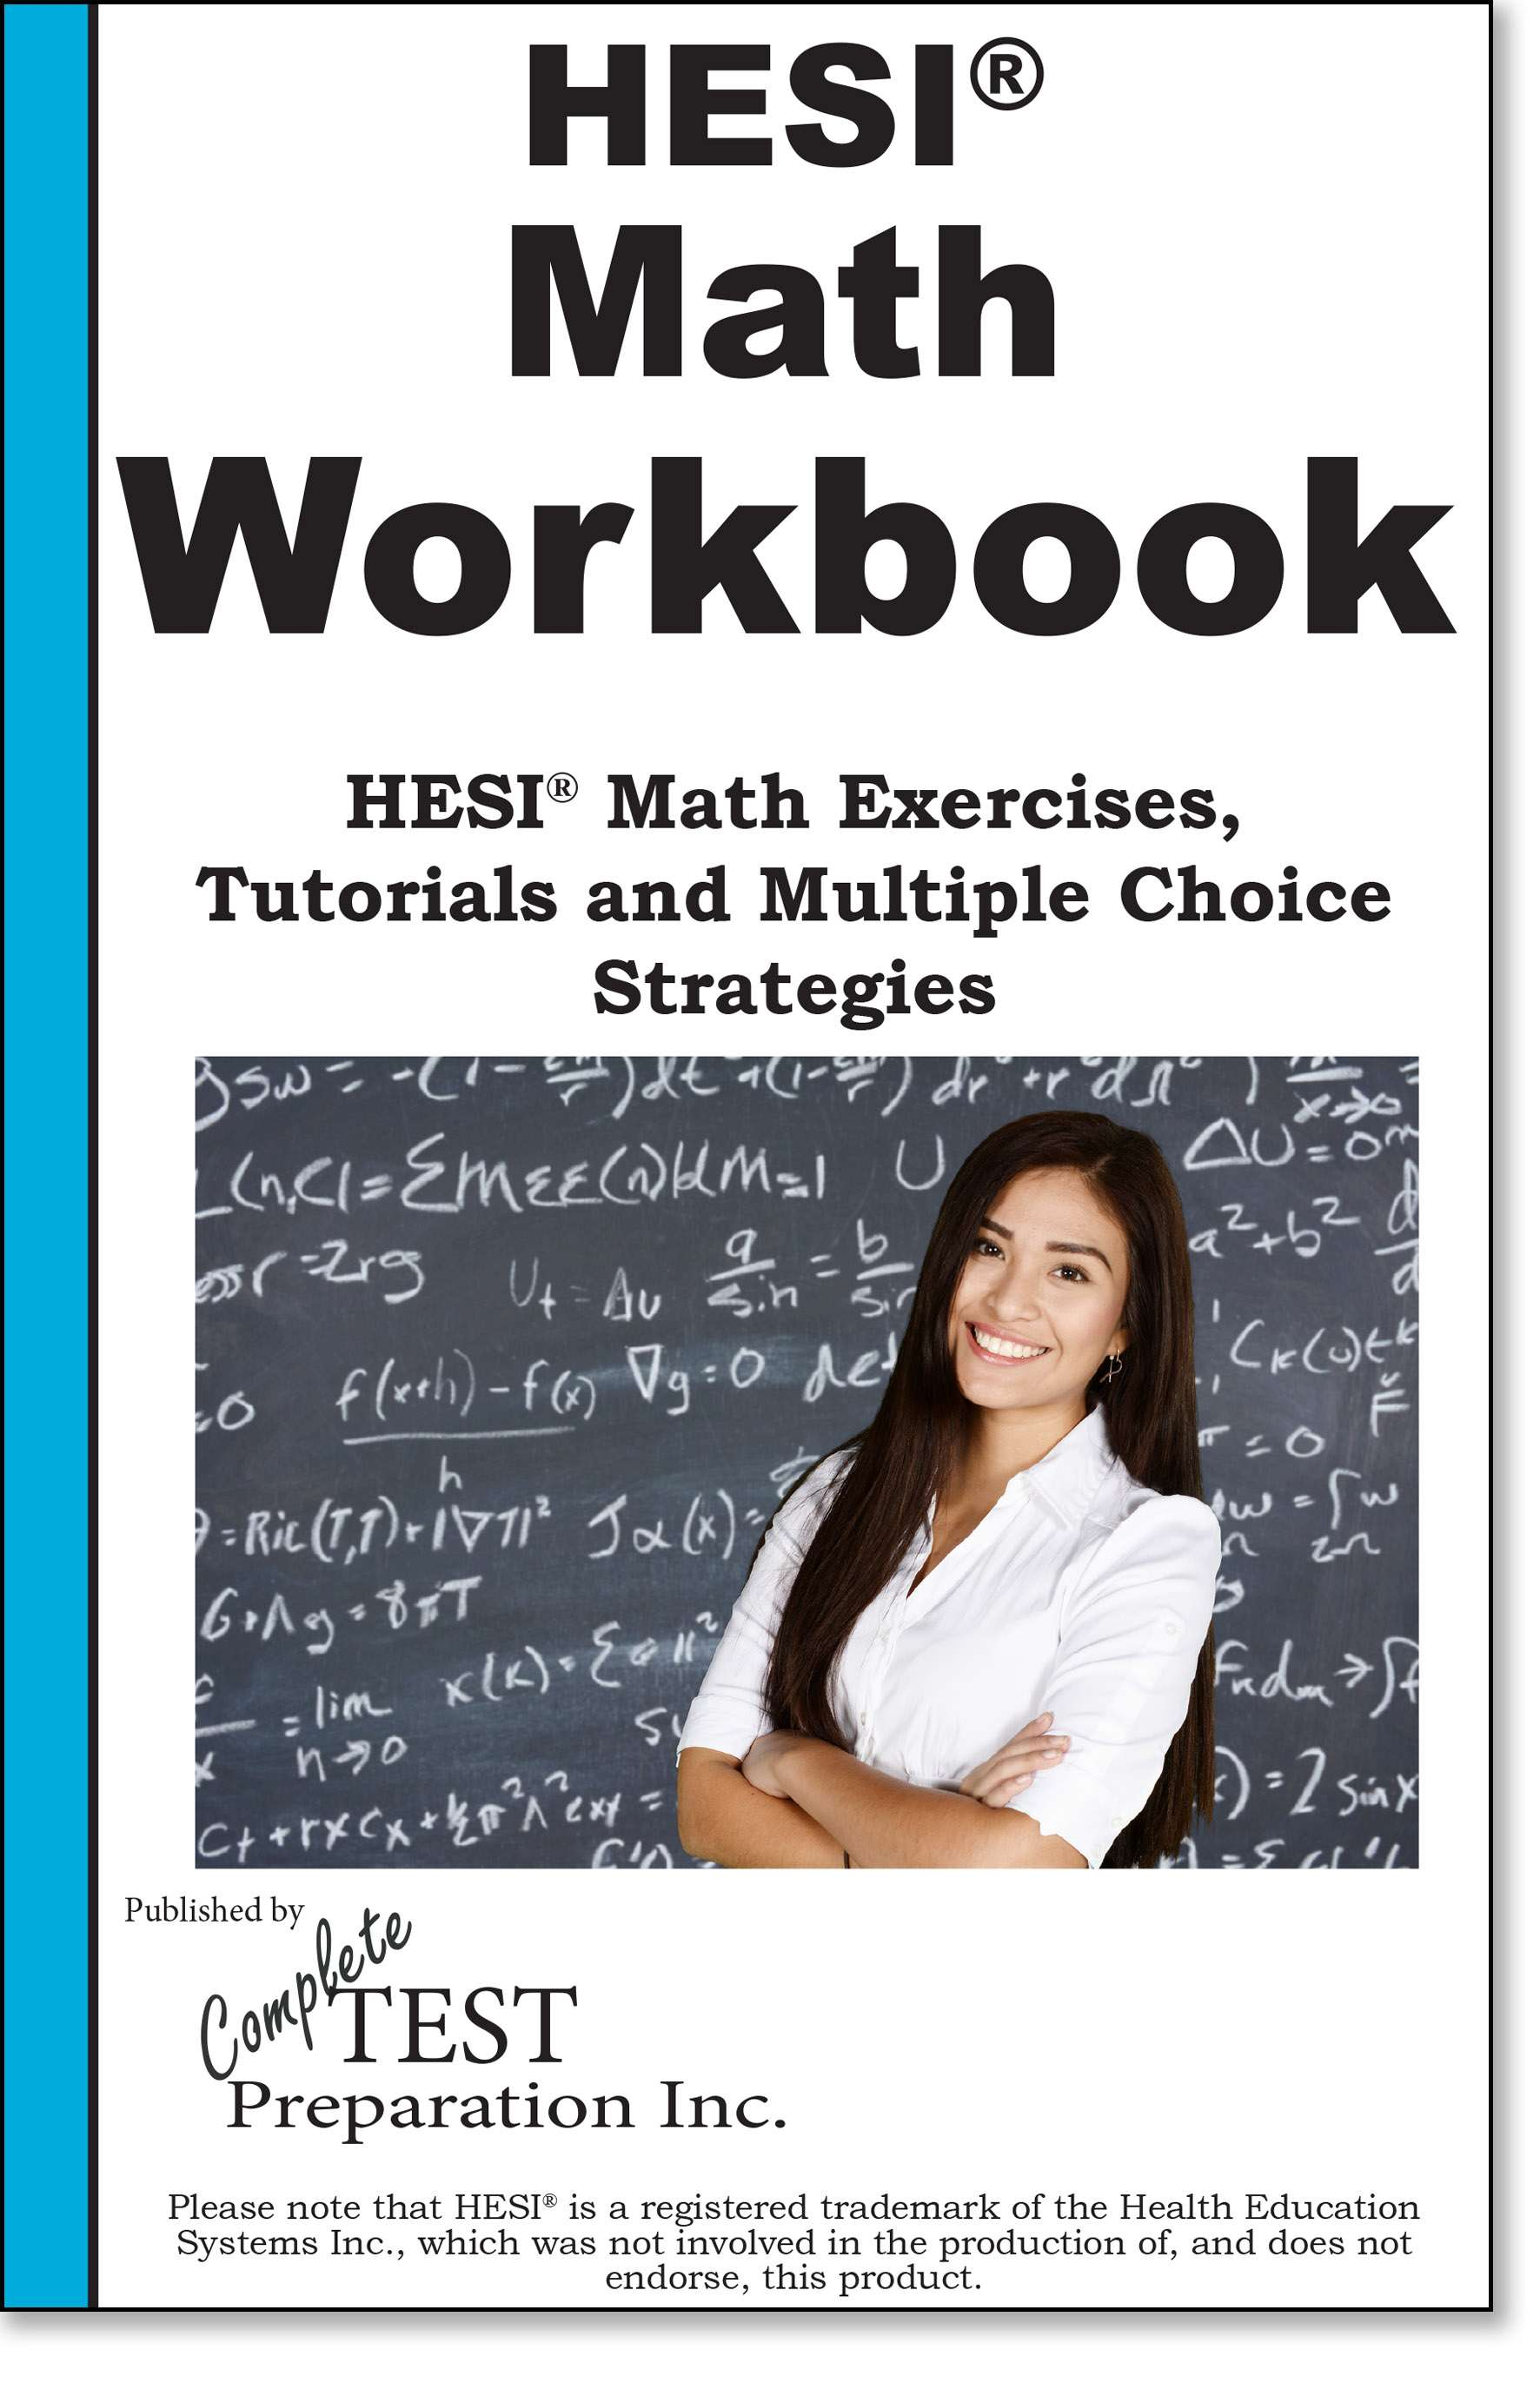 75 Hesi Math Practice Questions And Workbook Increase